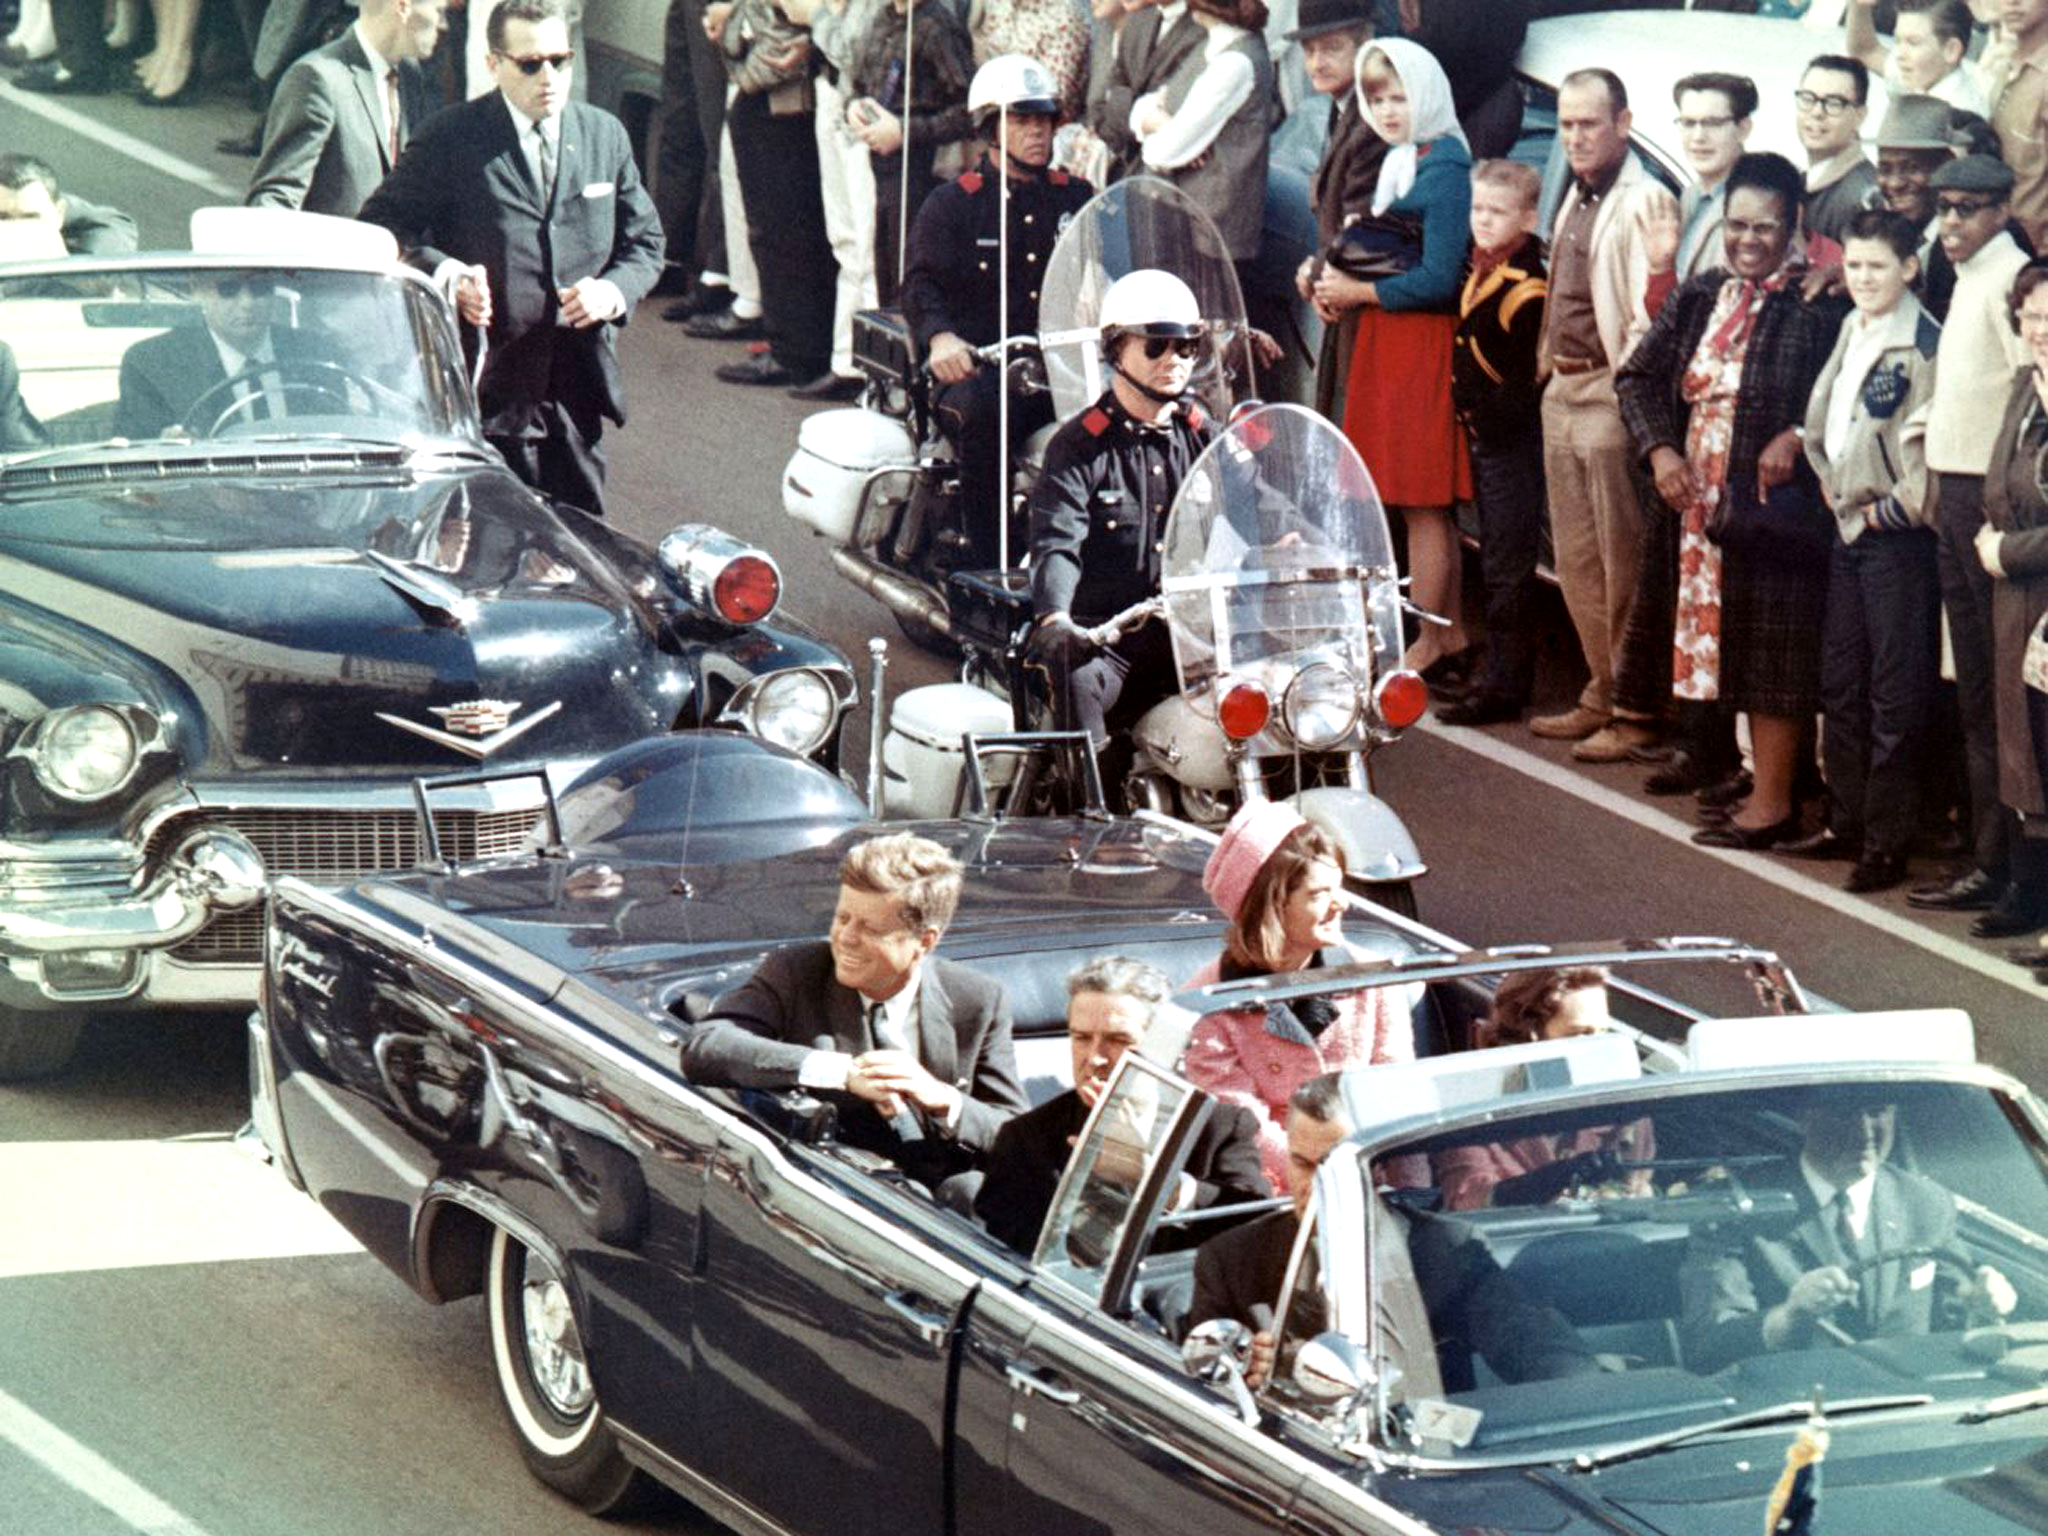 JFK Assassination facts